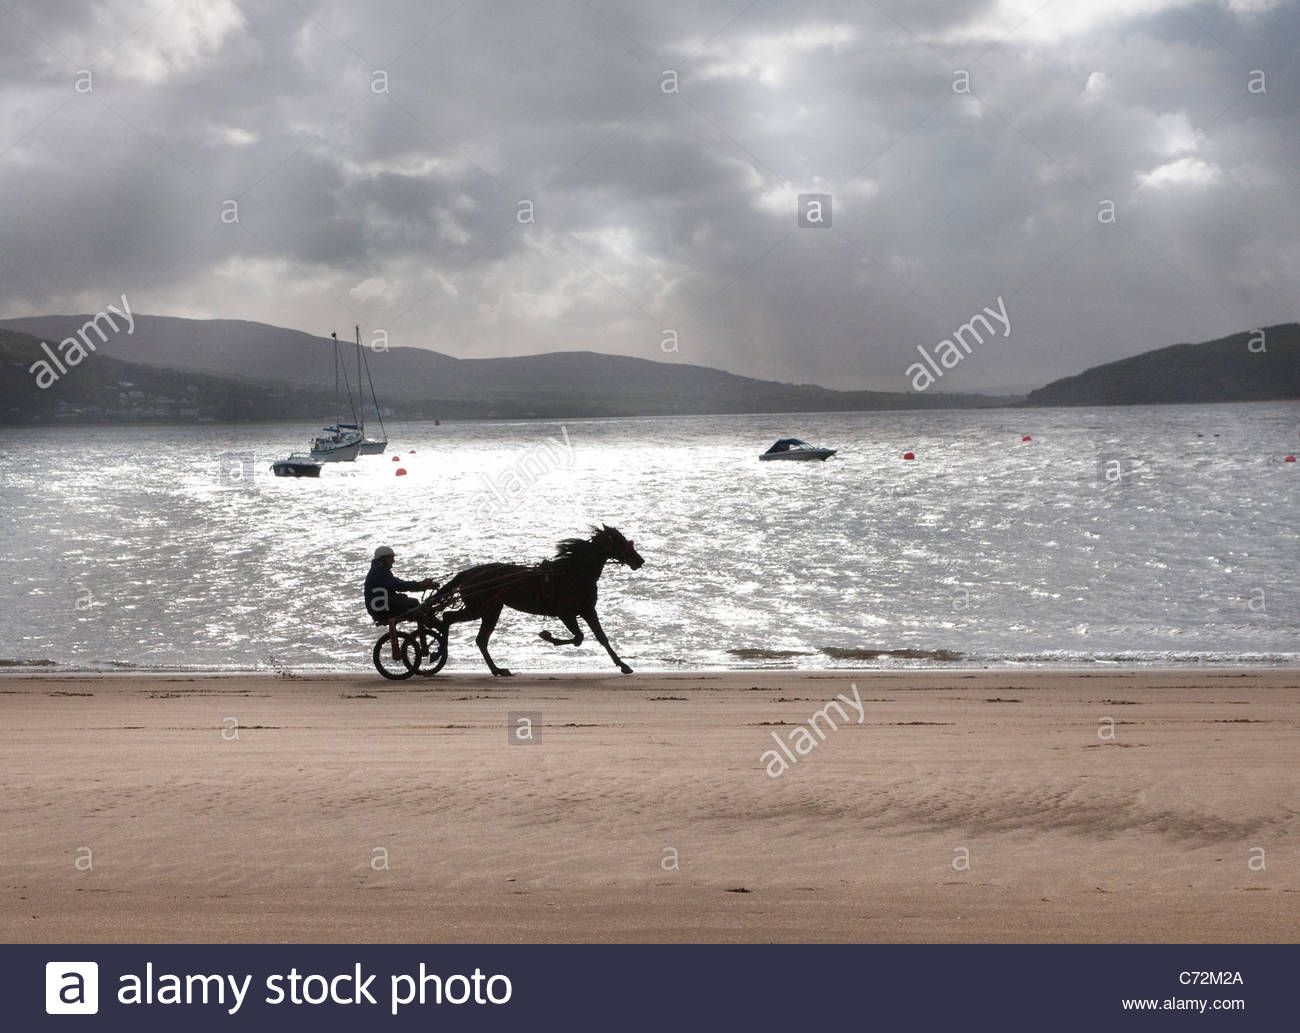 A sulky pulled by a race horse on the beach at Rathmullan, Co. Donegal, ireland - Stock Image